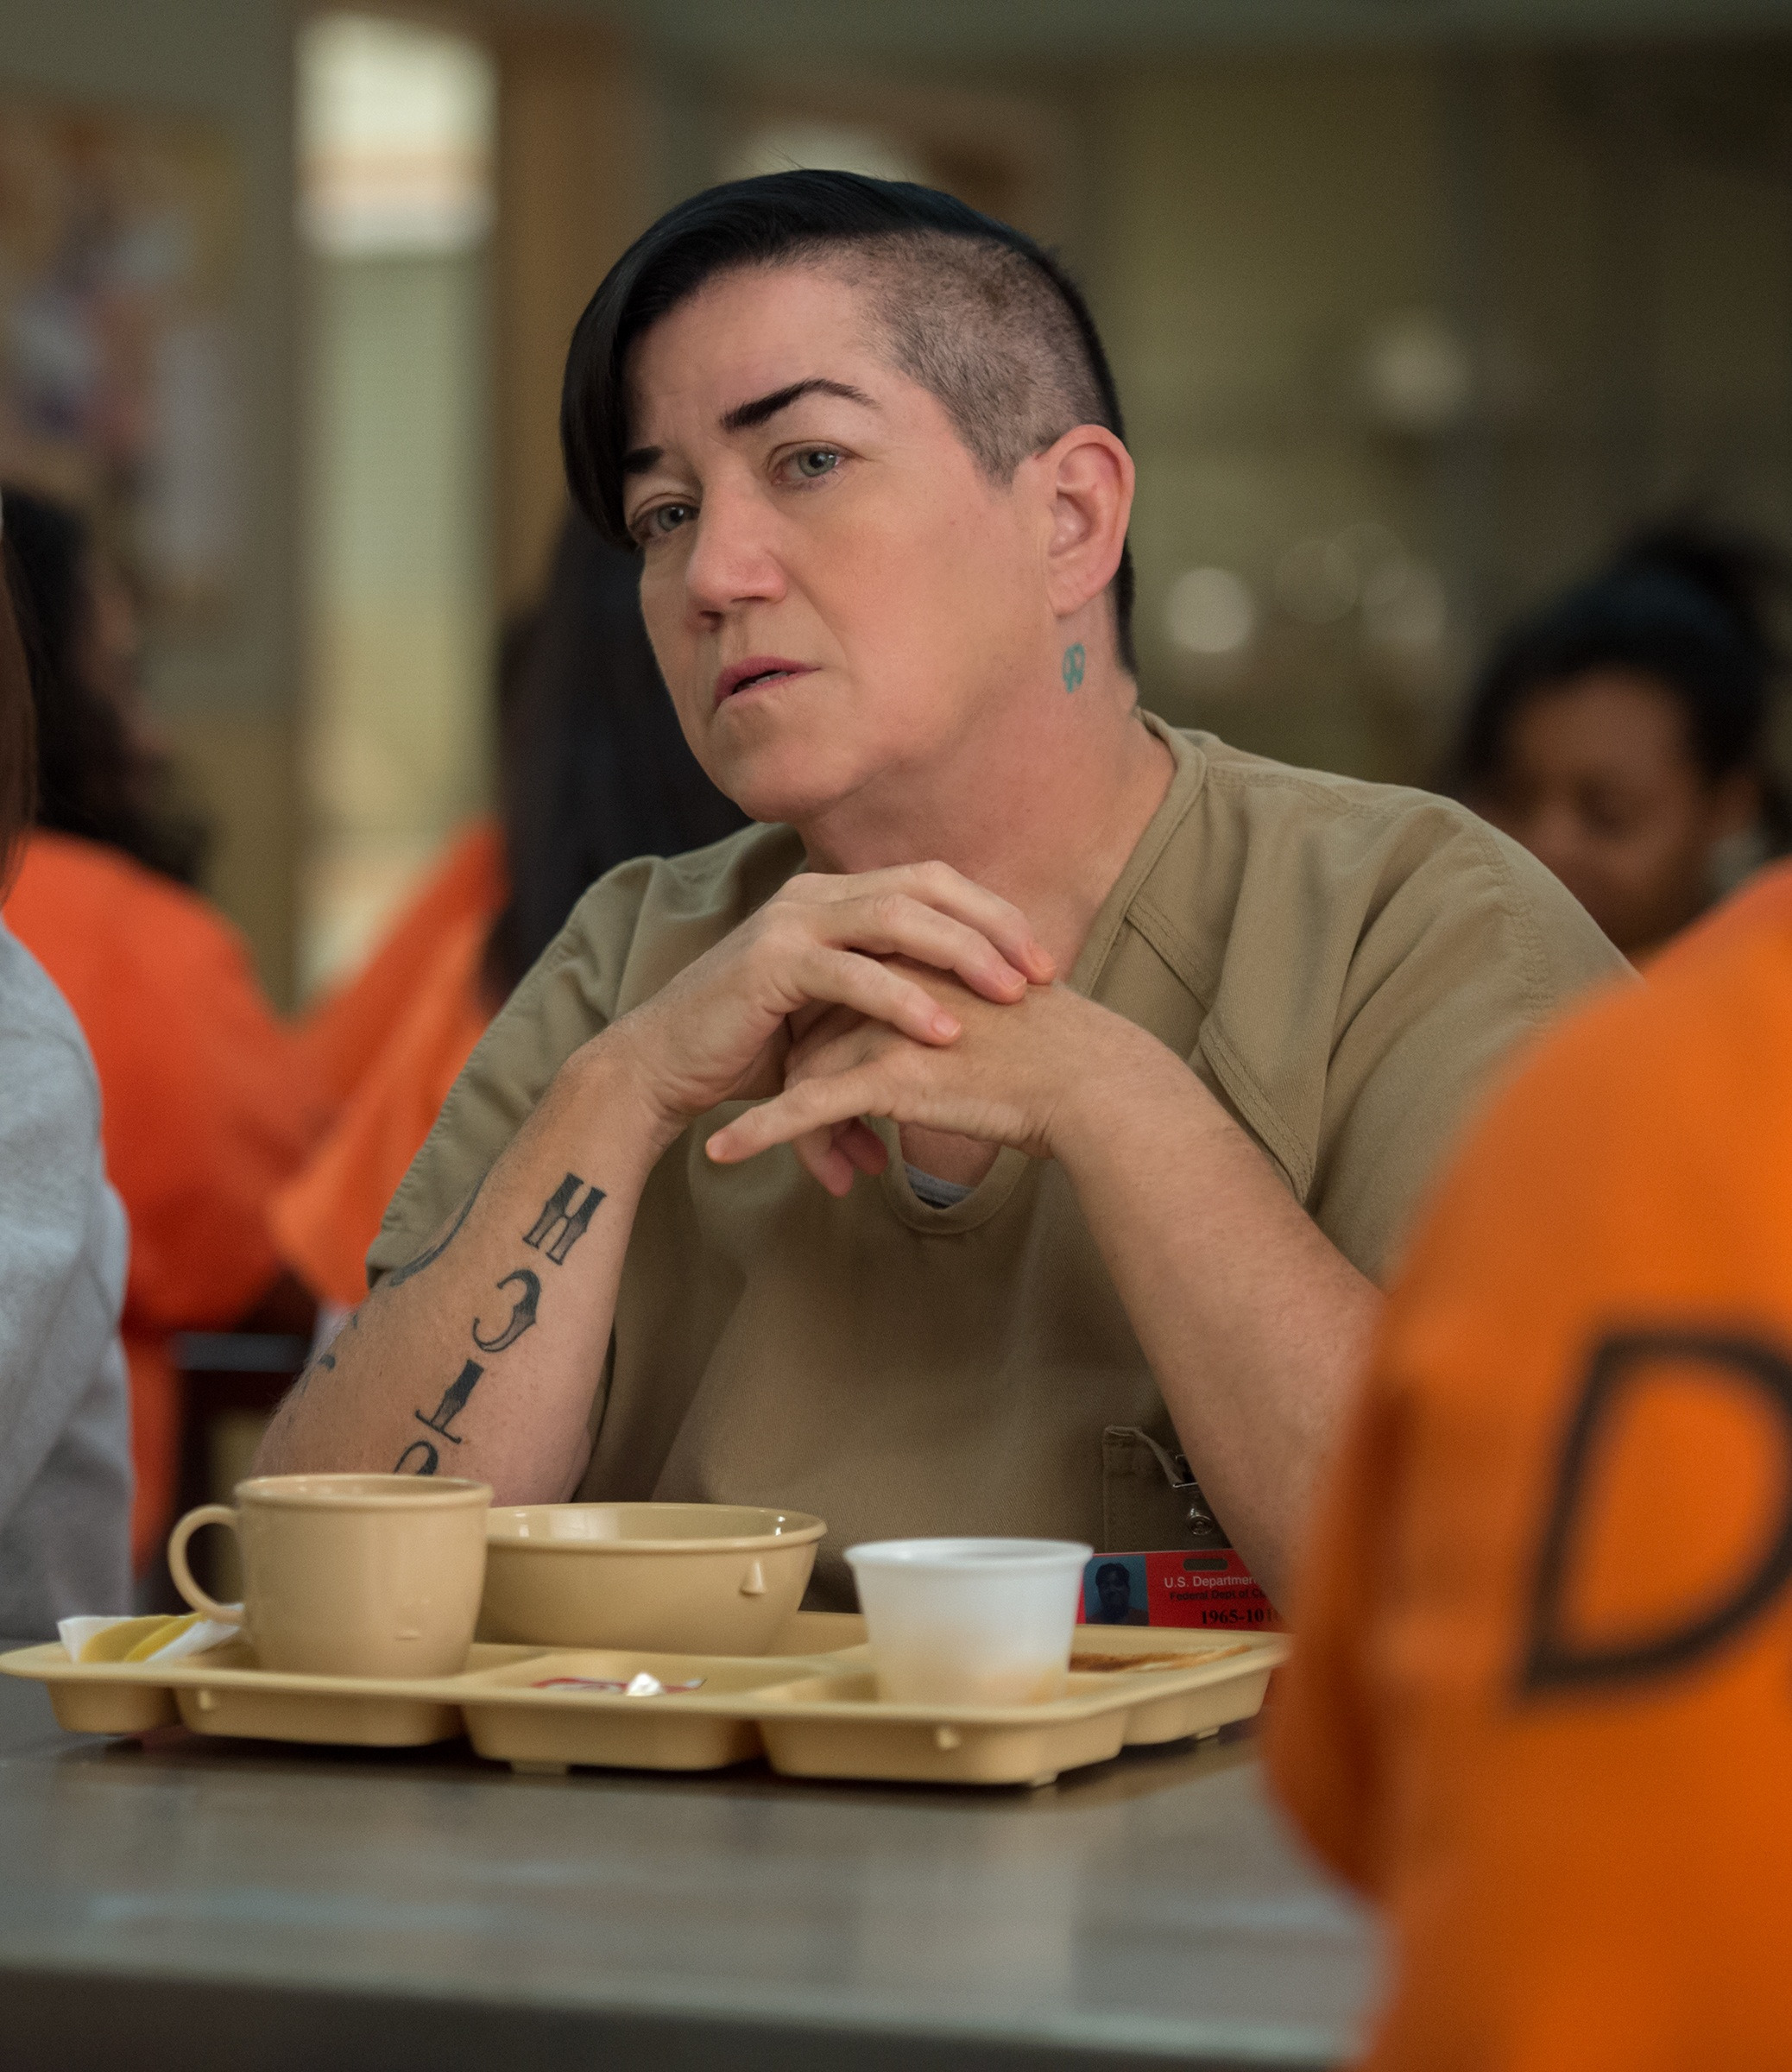 21f93bfd 84c7 4a3c aec6 4b094f6e3d7c oitnb 4020629 01063 r 25 Things You Didn't Know About Orange Is The New Black